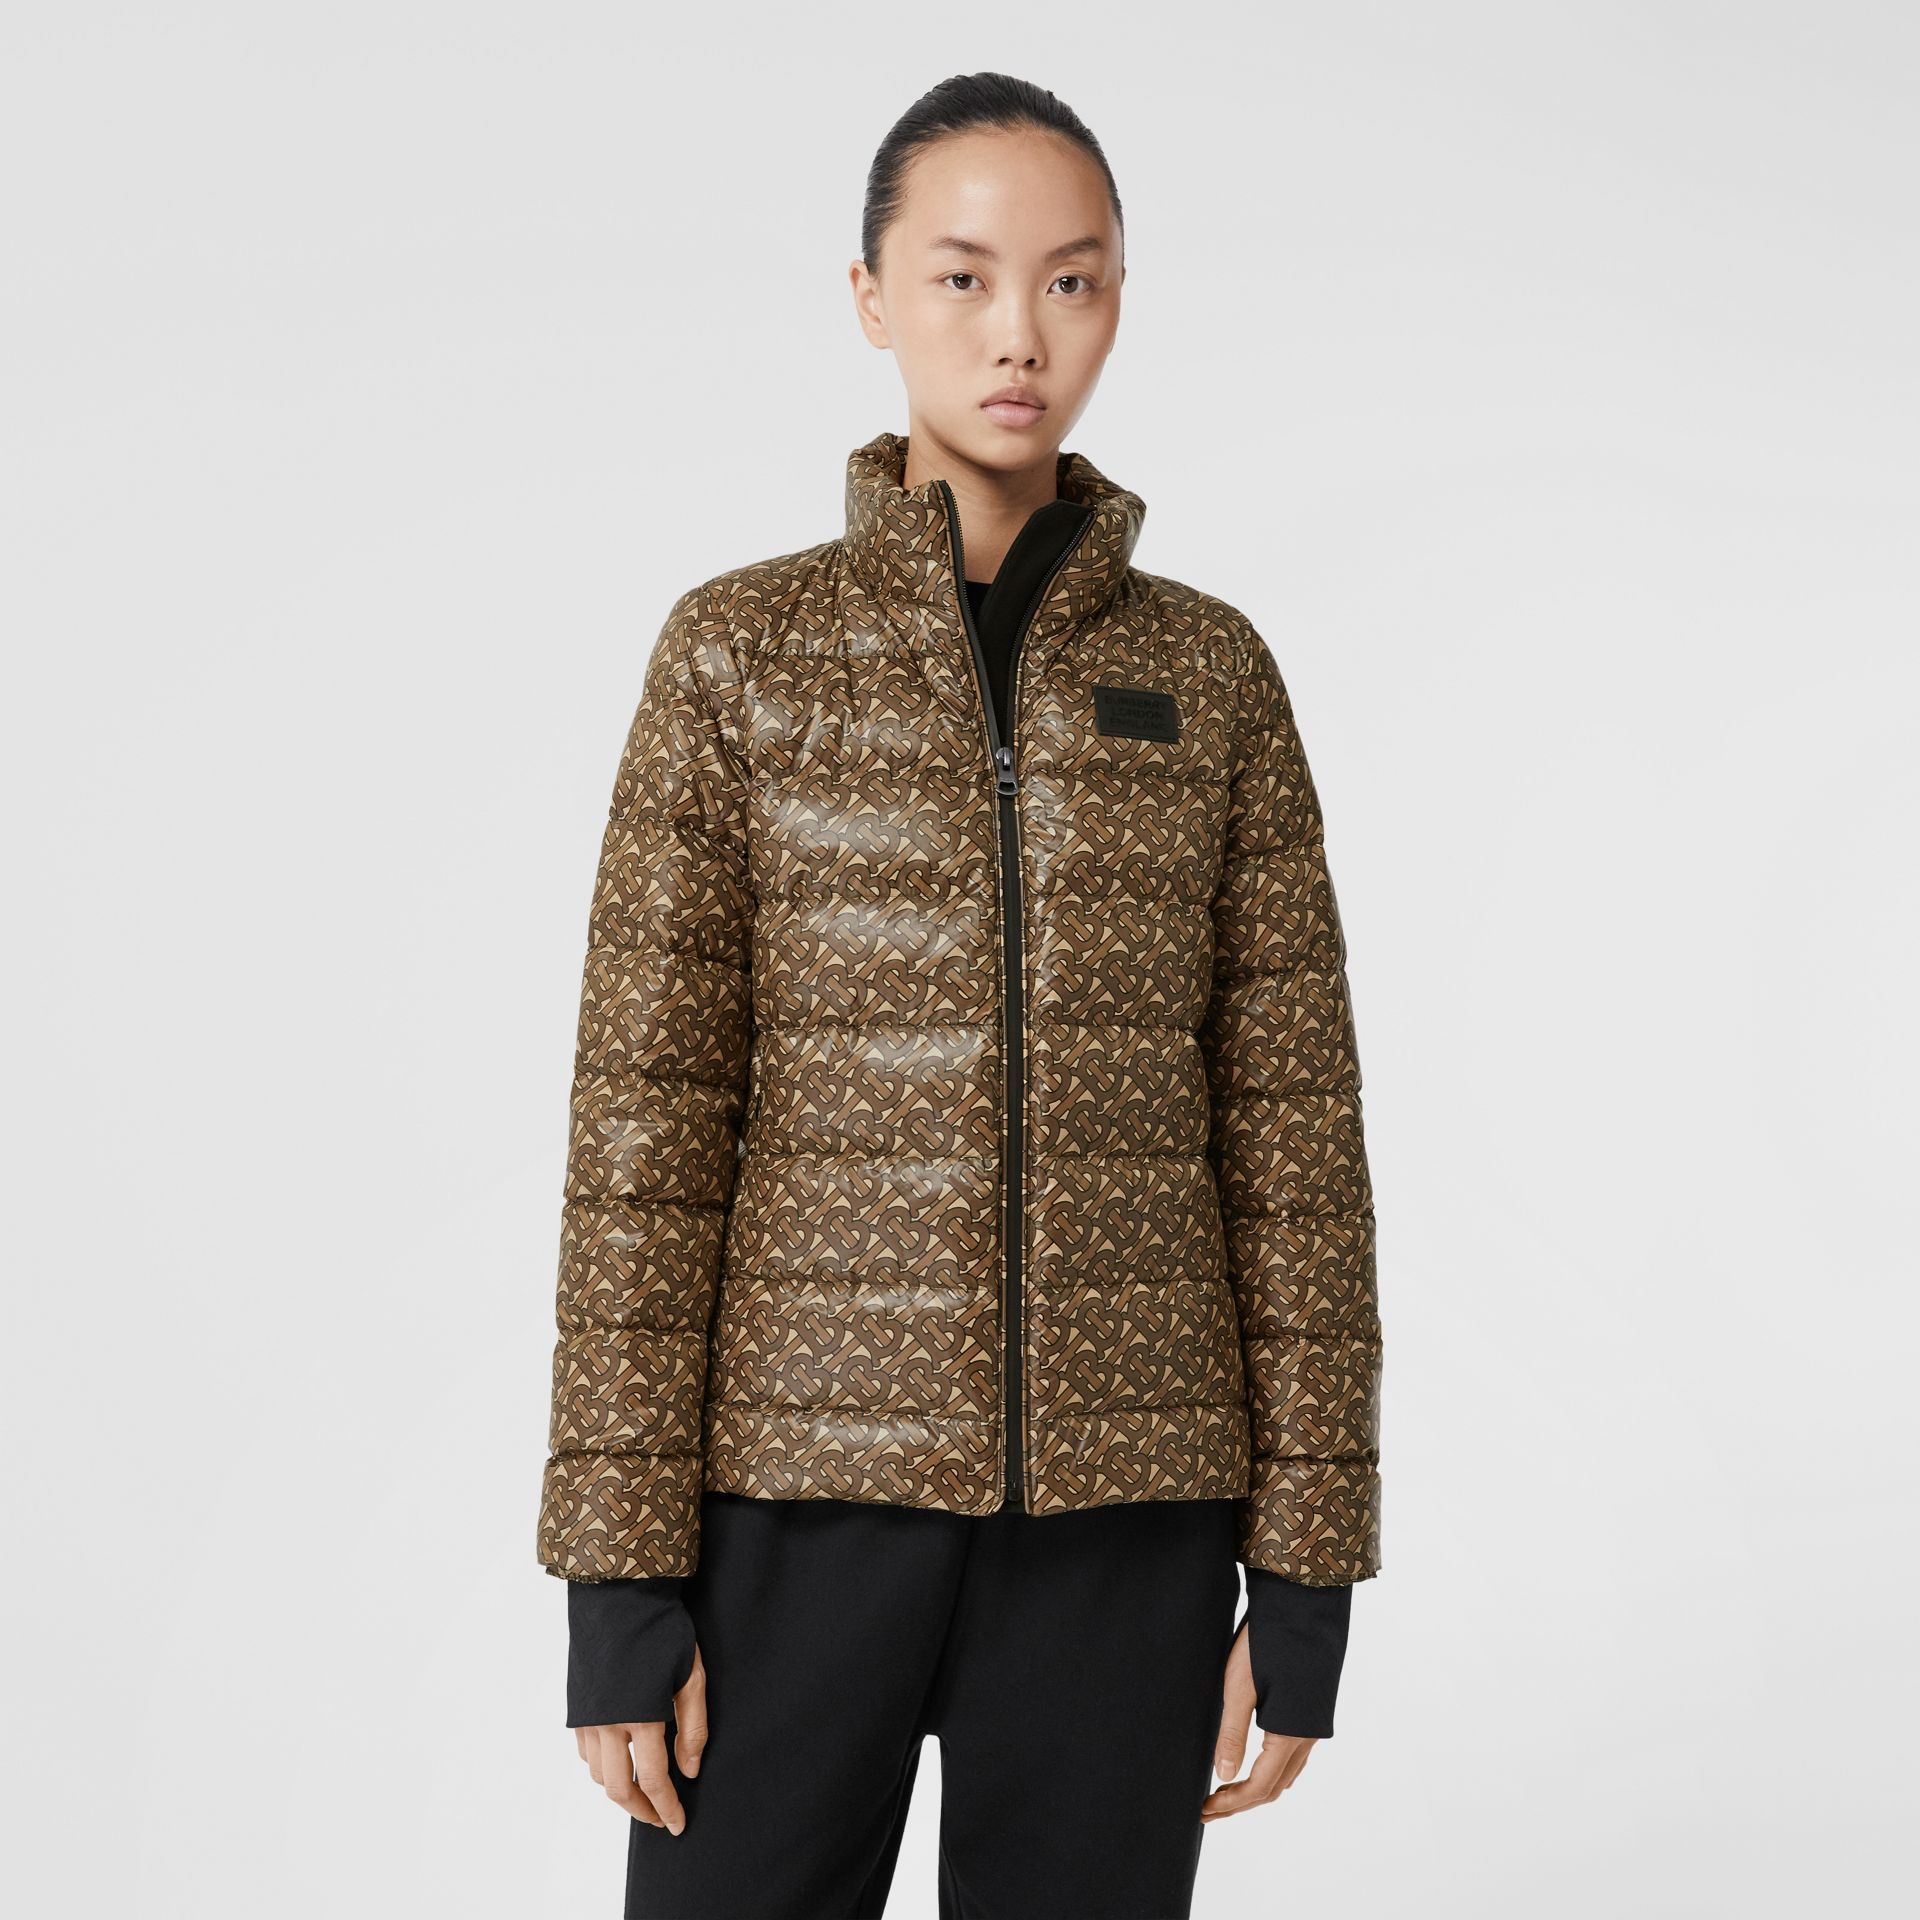 Monogram Print Nylon Puffer Jacket in Bridle Brown - Women | Burberry - gallery image 5